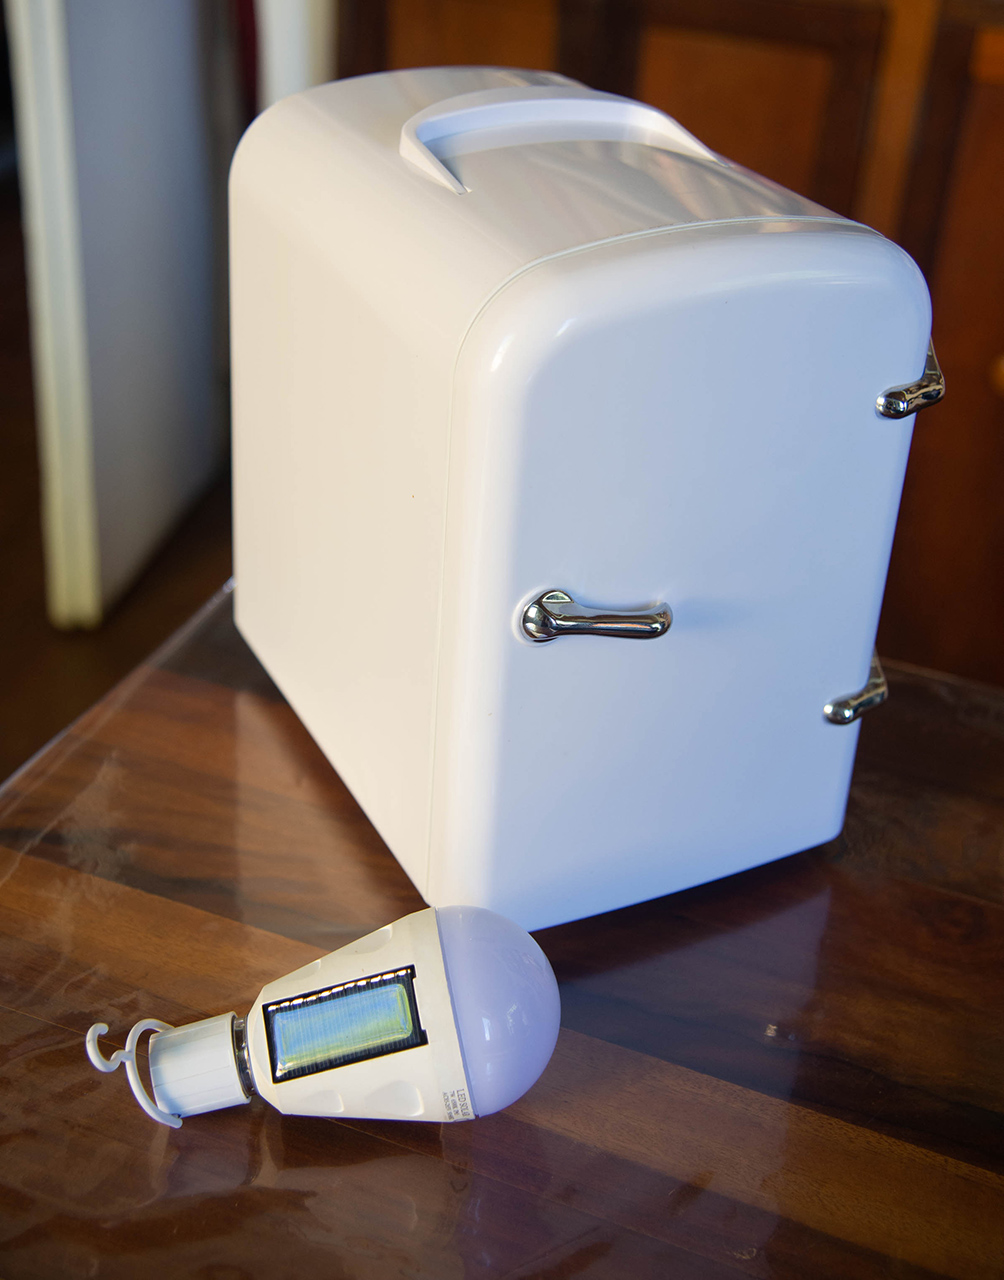 A solar lamp and mini fridge produced by Casa Pueblo. Photo by Valerie Welch